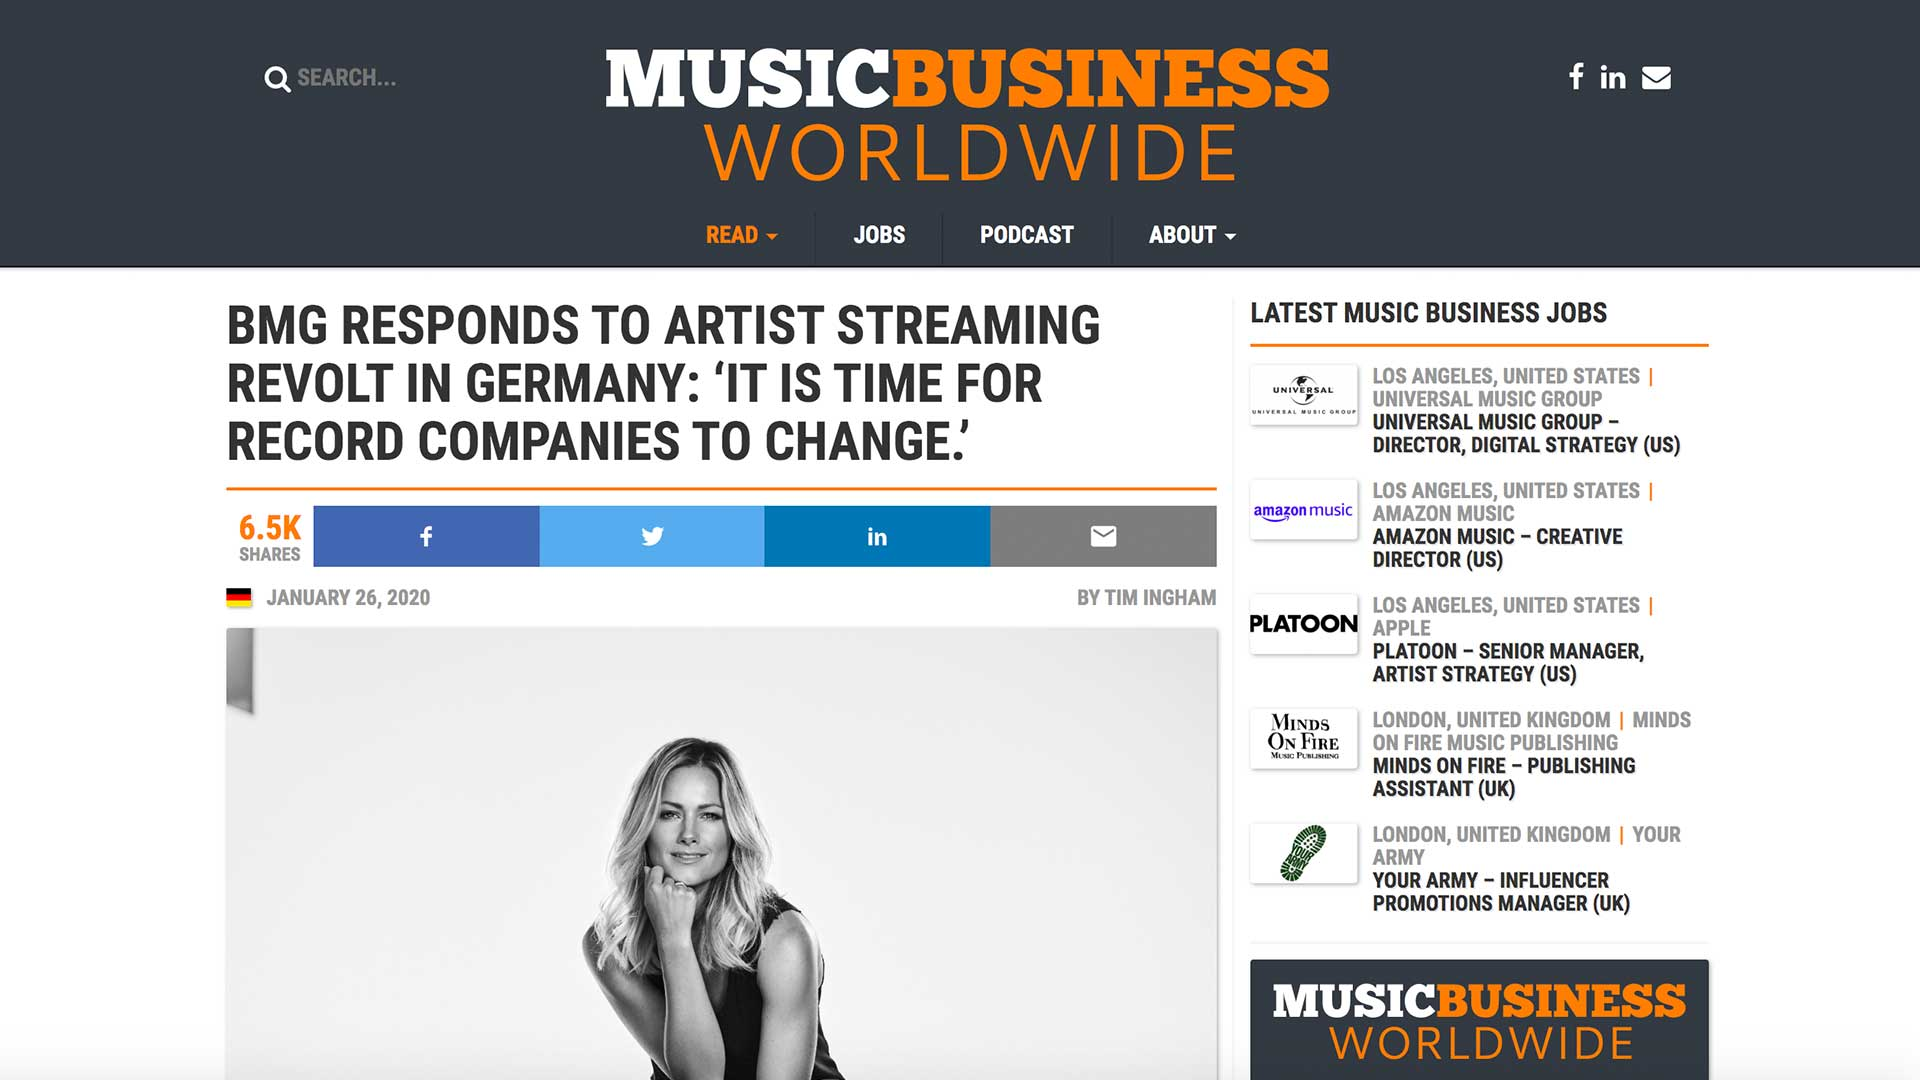 Fairness Rocks News BMG RESPONDS TO ARTIST STREAMING REVOLT IN GERMANY: 'IT IS TIME FOR RECORD COMPANIES TO CHANGE.'